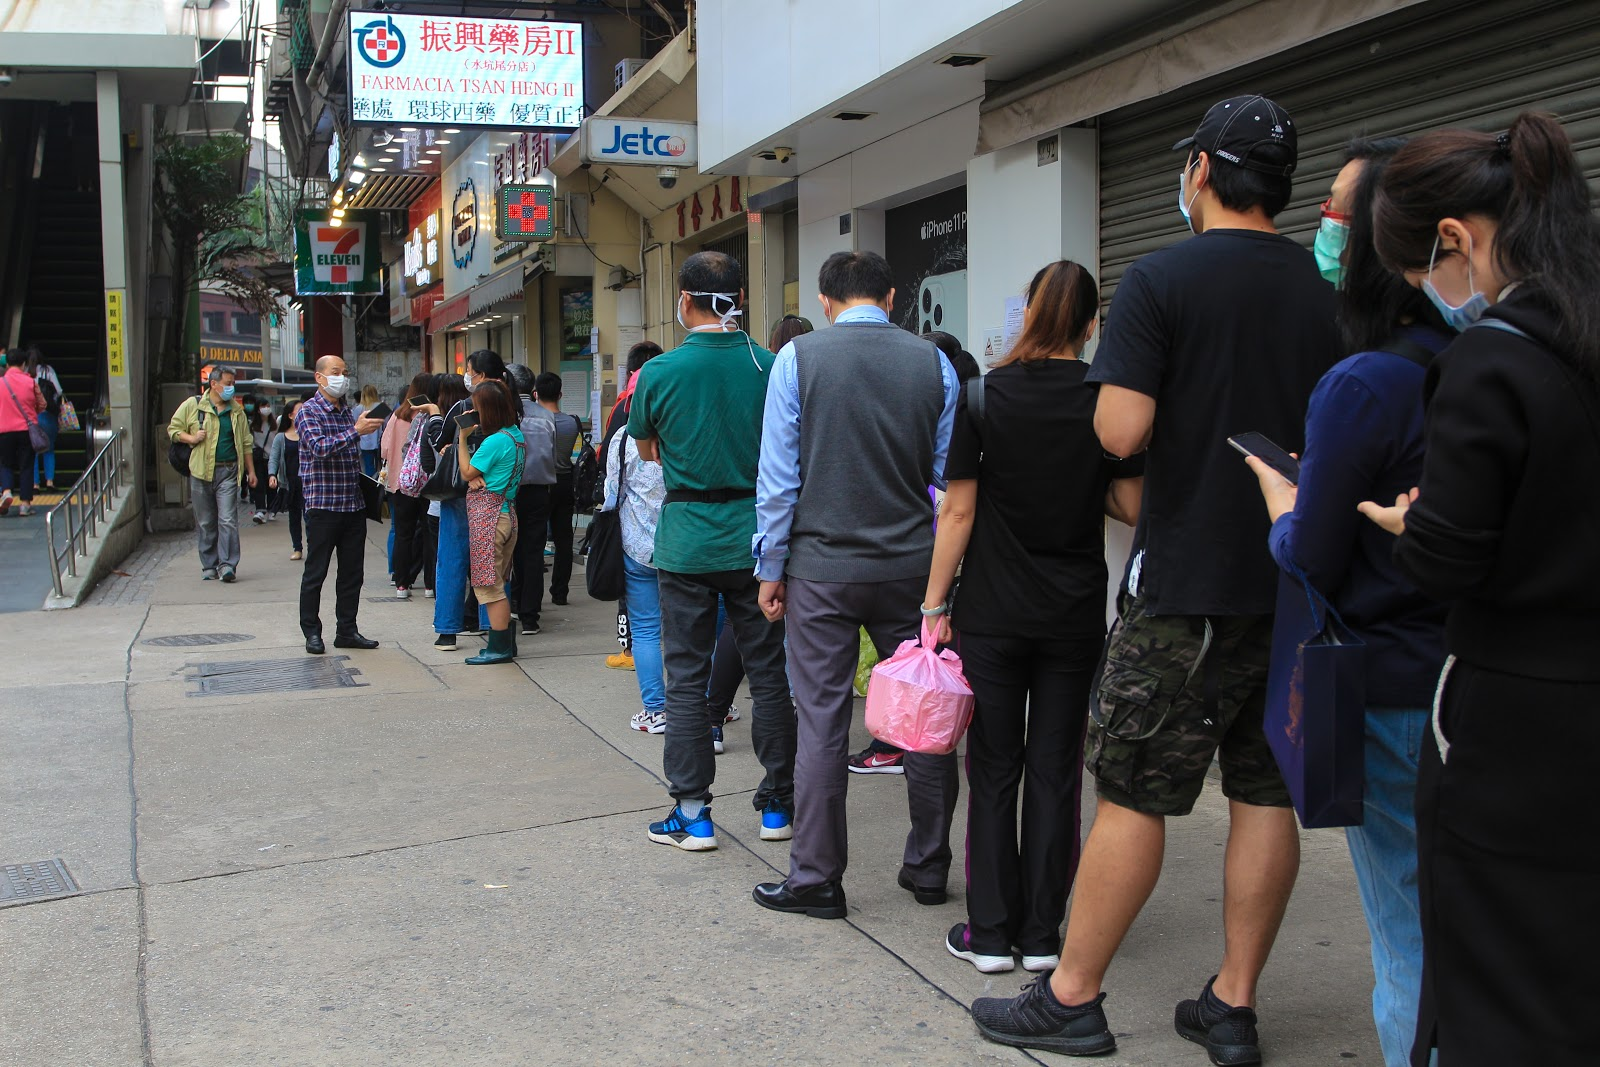 People in line wearing wholesale masks